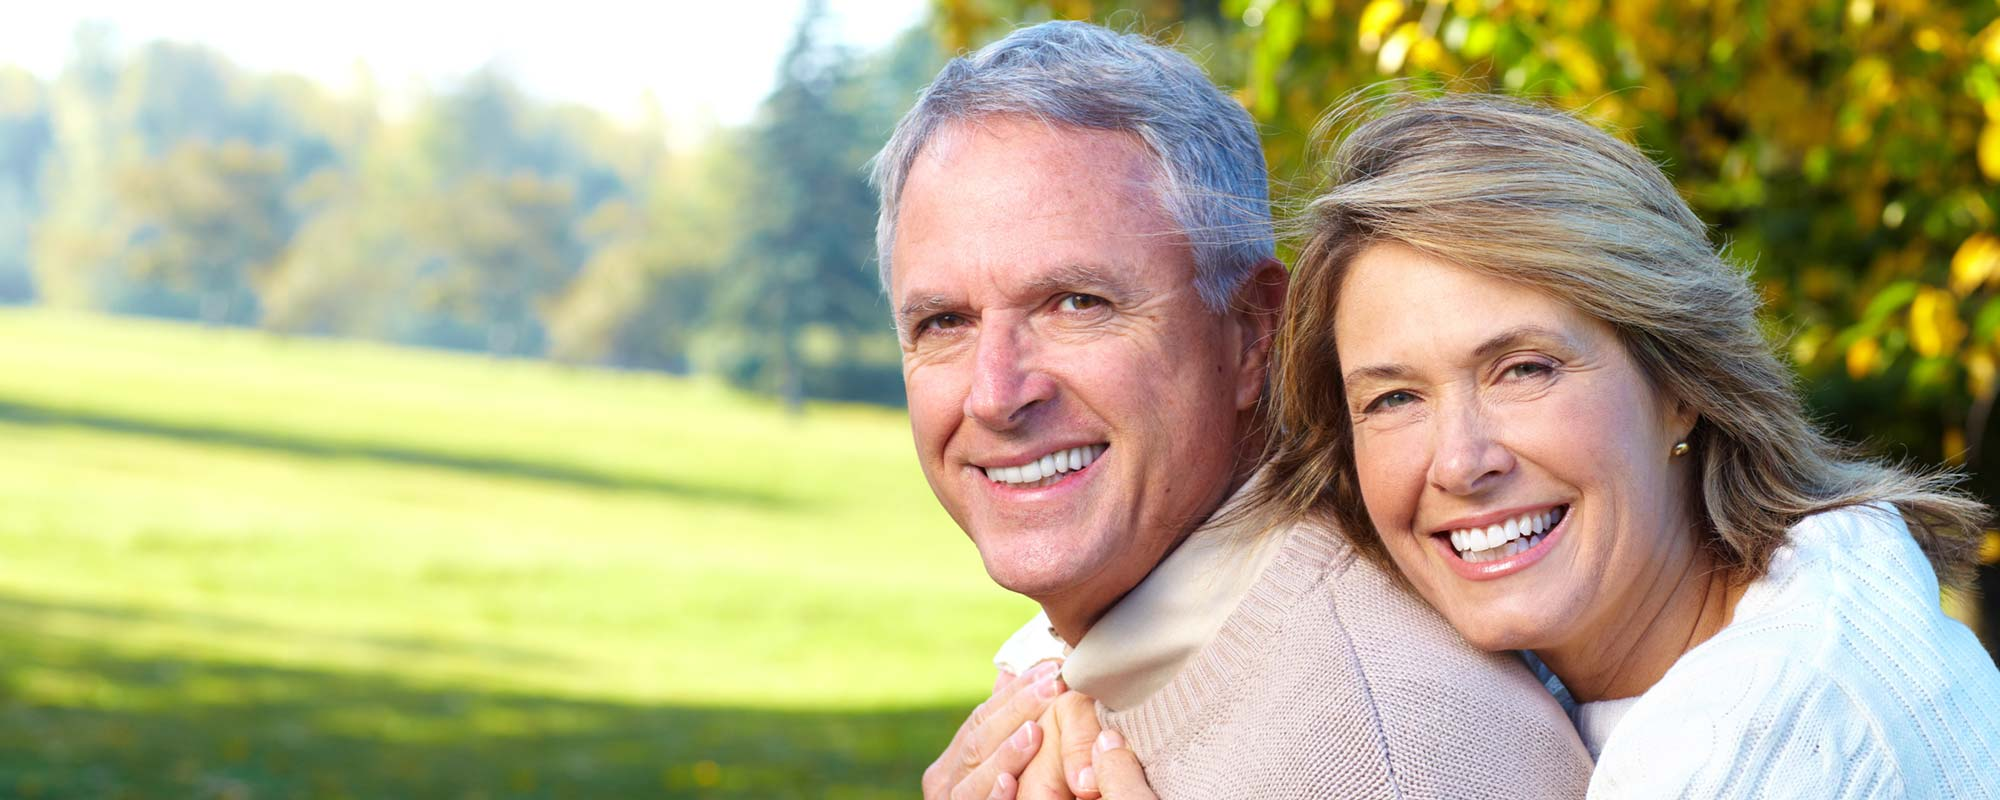 Dental Associates offers you a full range of dental implants and periodontics services.